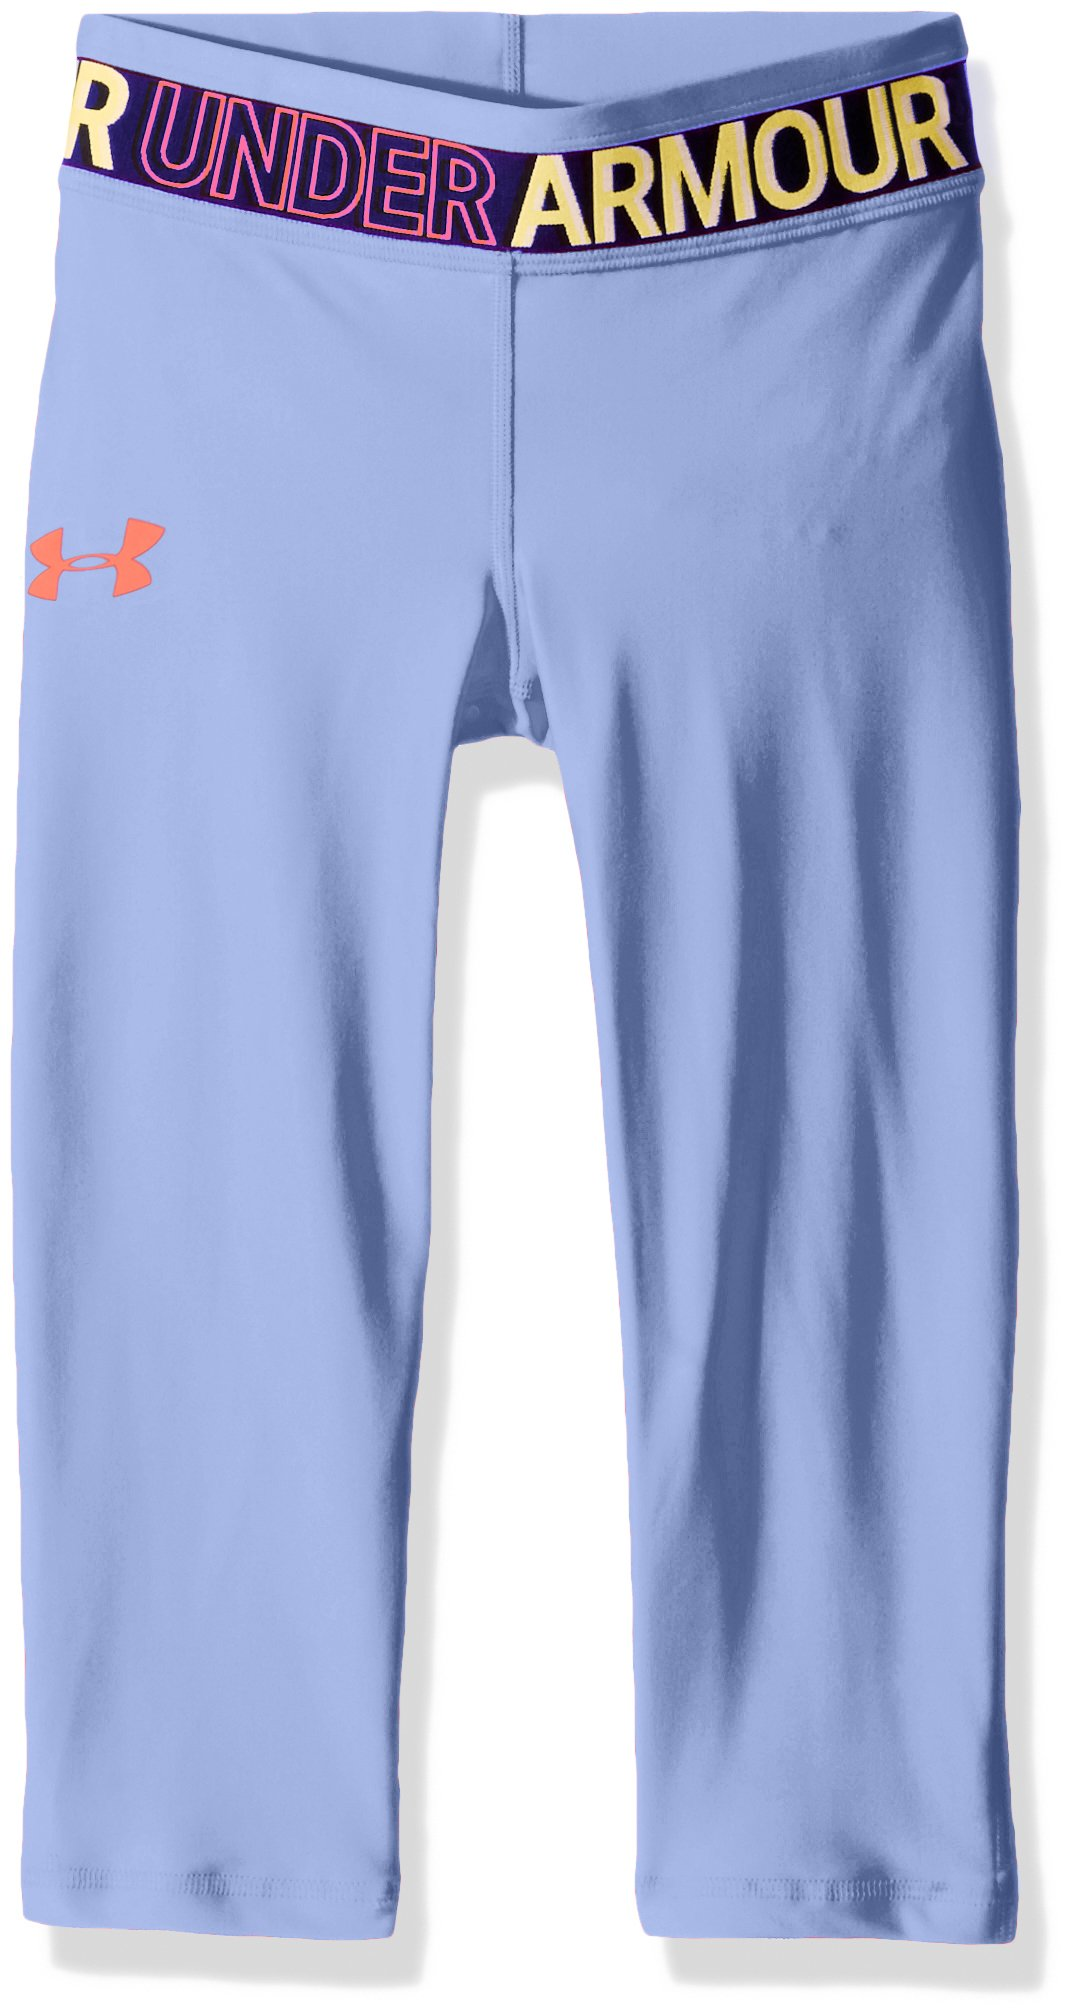 Under Armour Girls' HeatGear Armour Capris, Talc Blue /Neon Coral, Youth Large by Under Armour